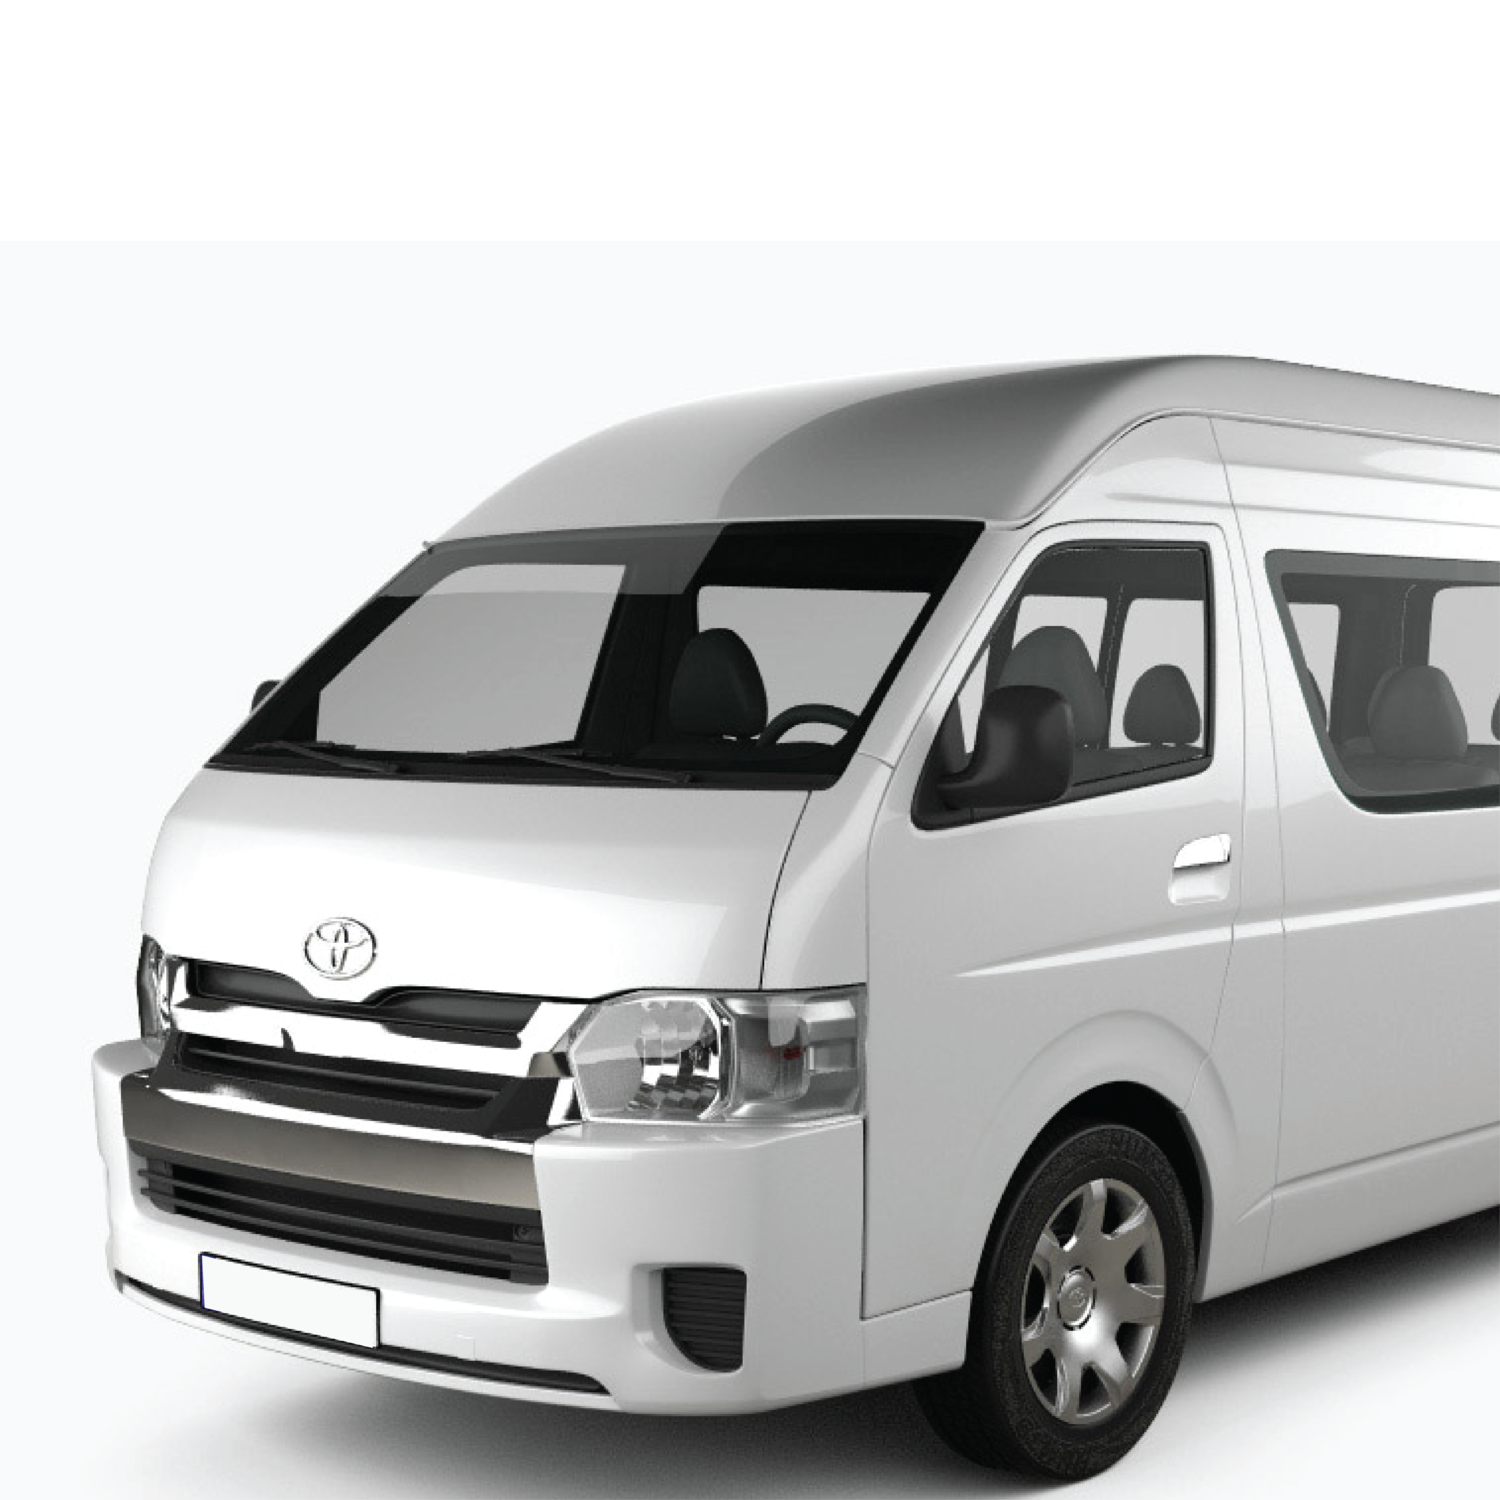 Book a Standard 9/13 Limo (Hourly Charter)